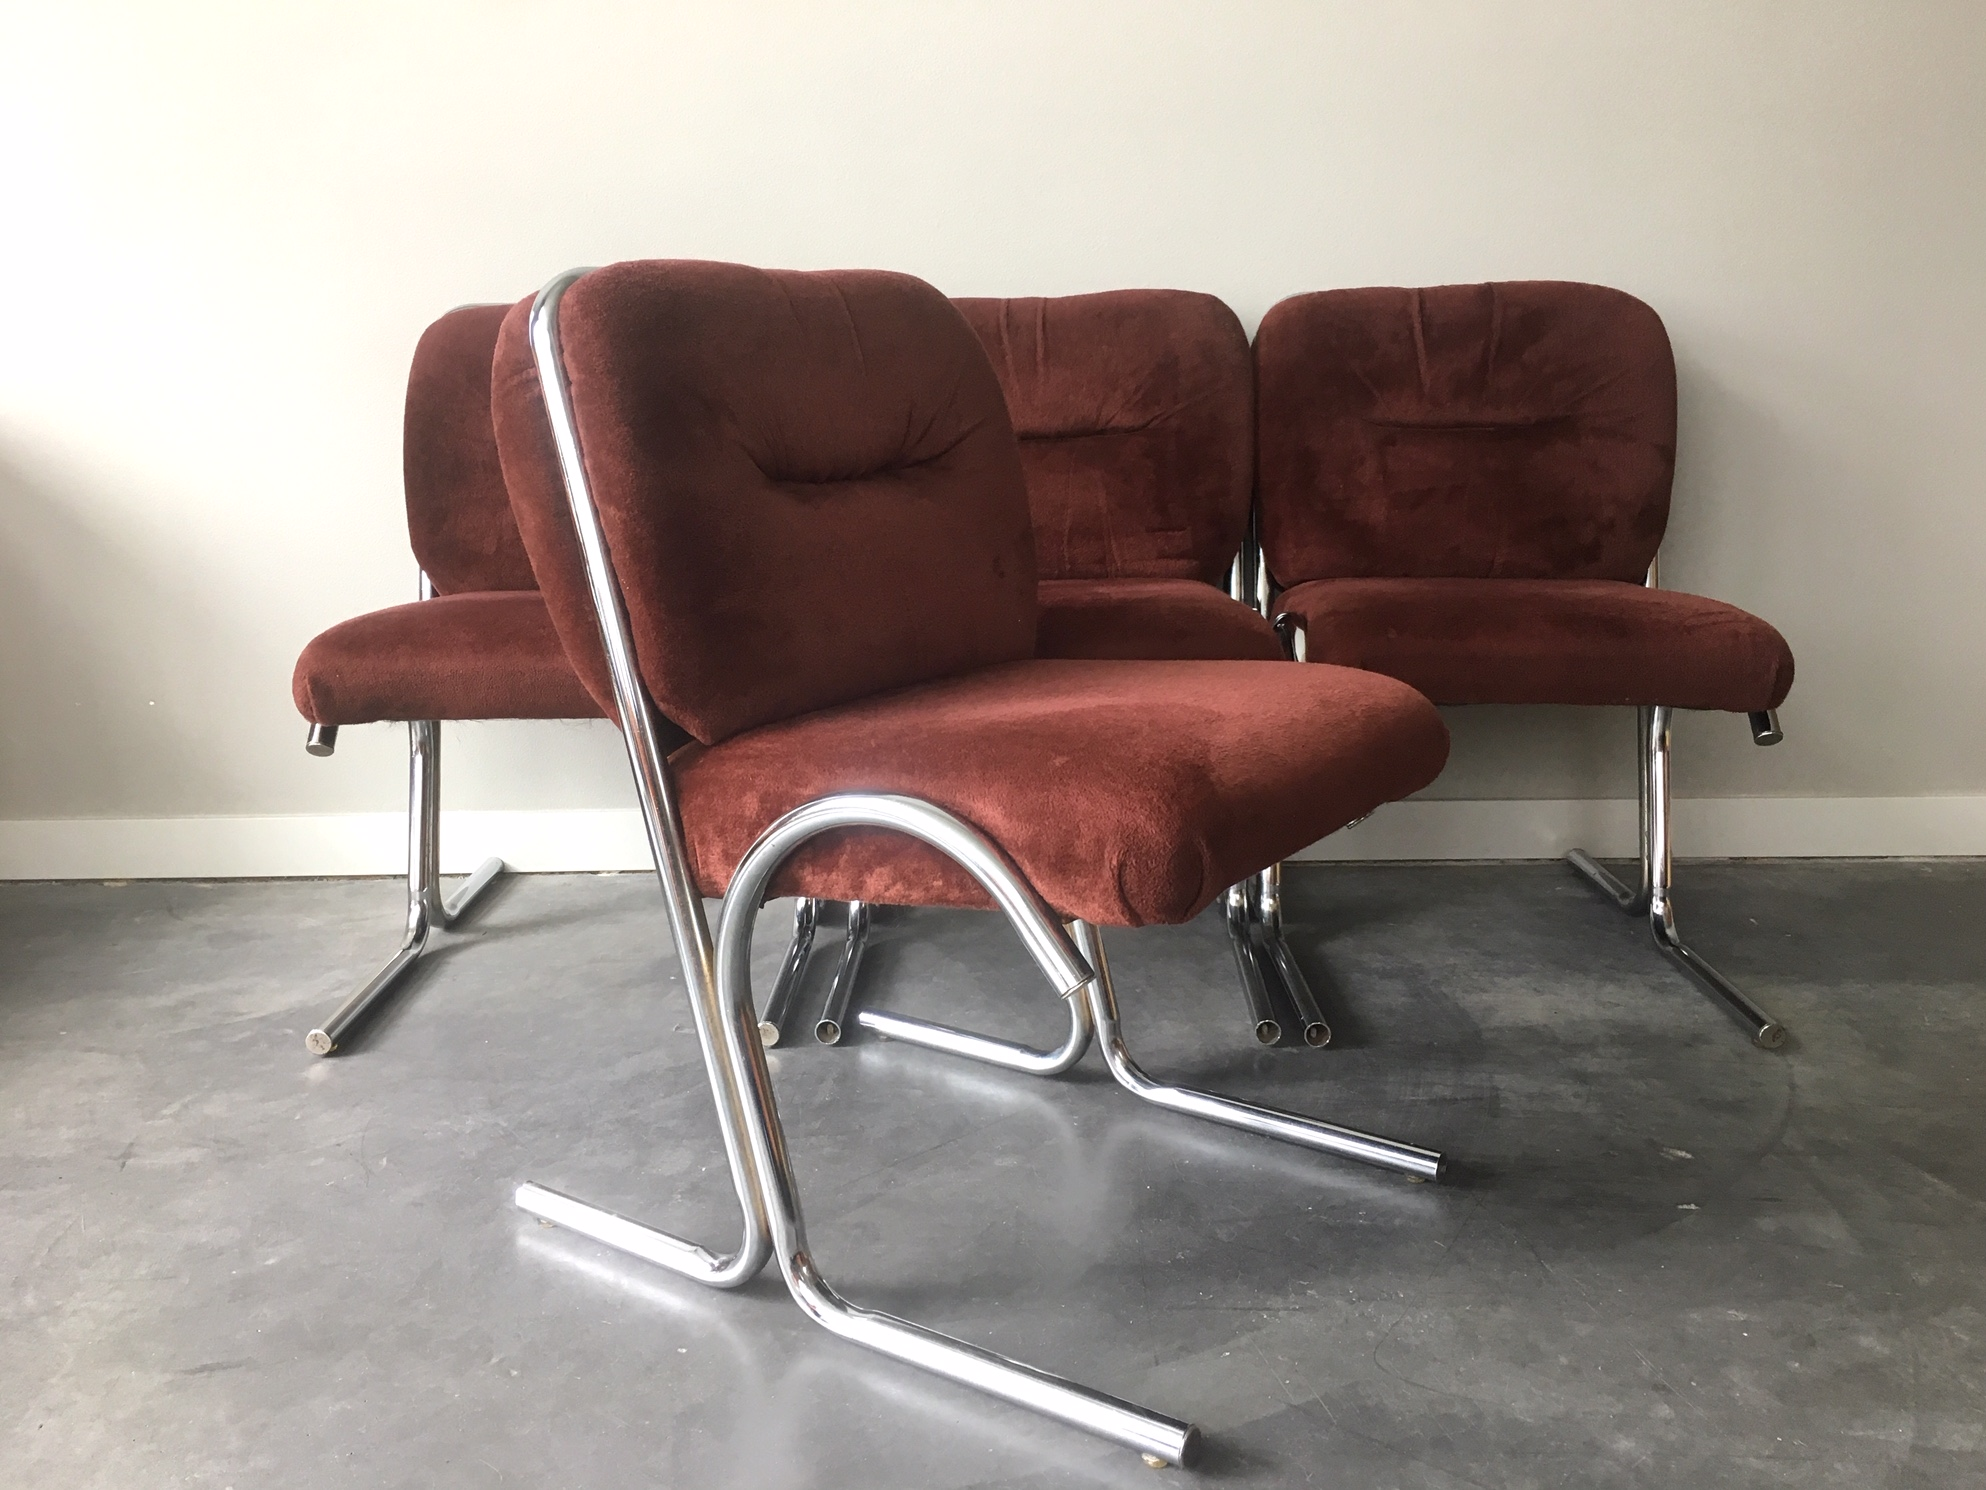 Set Of 4 Vintage Mid Century Modern Chrome Cantilever Chairs Rerunroom Vintage Furniture Home Decor